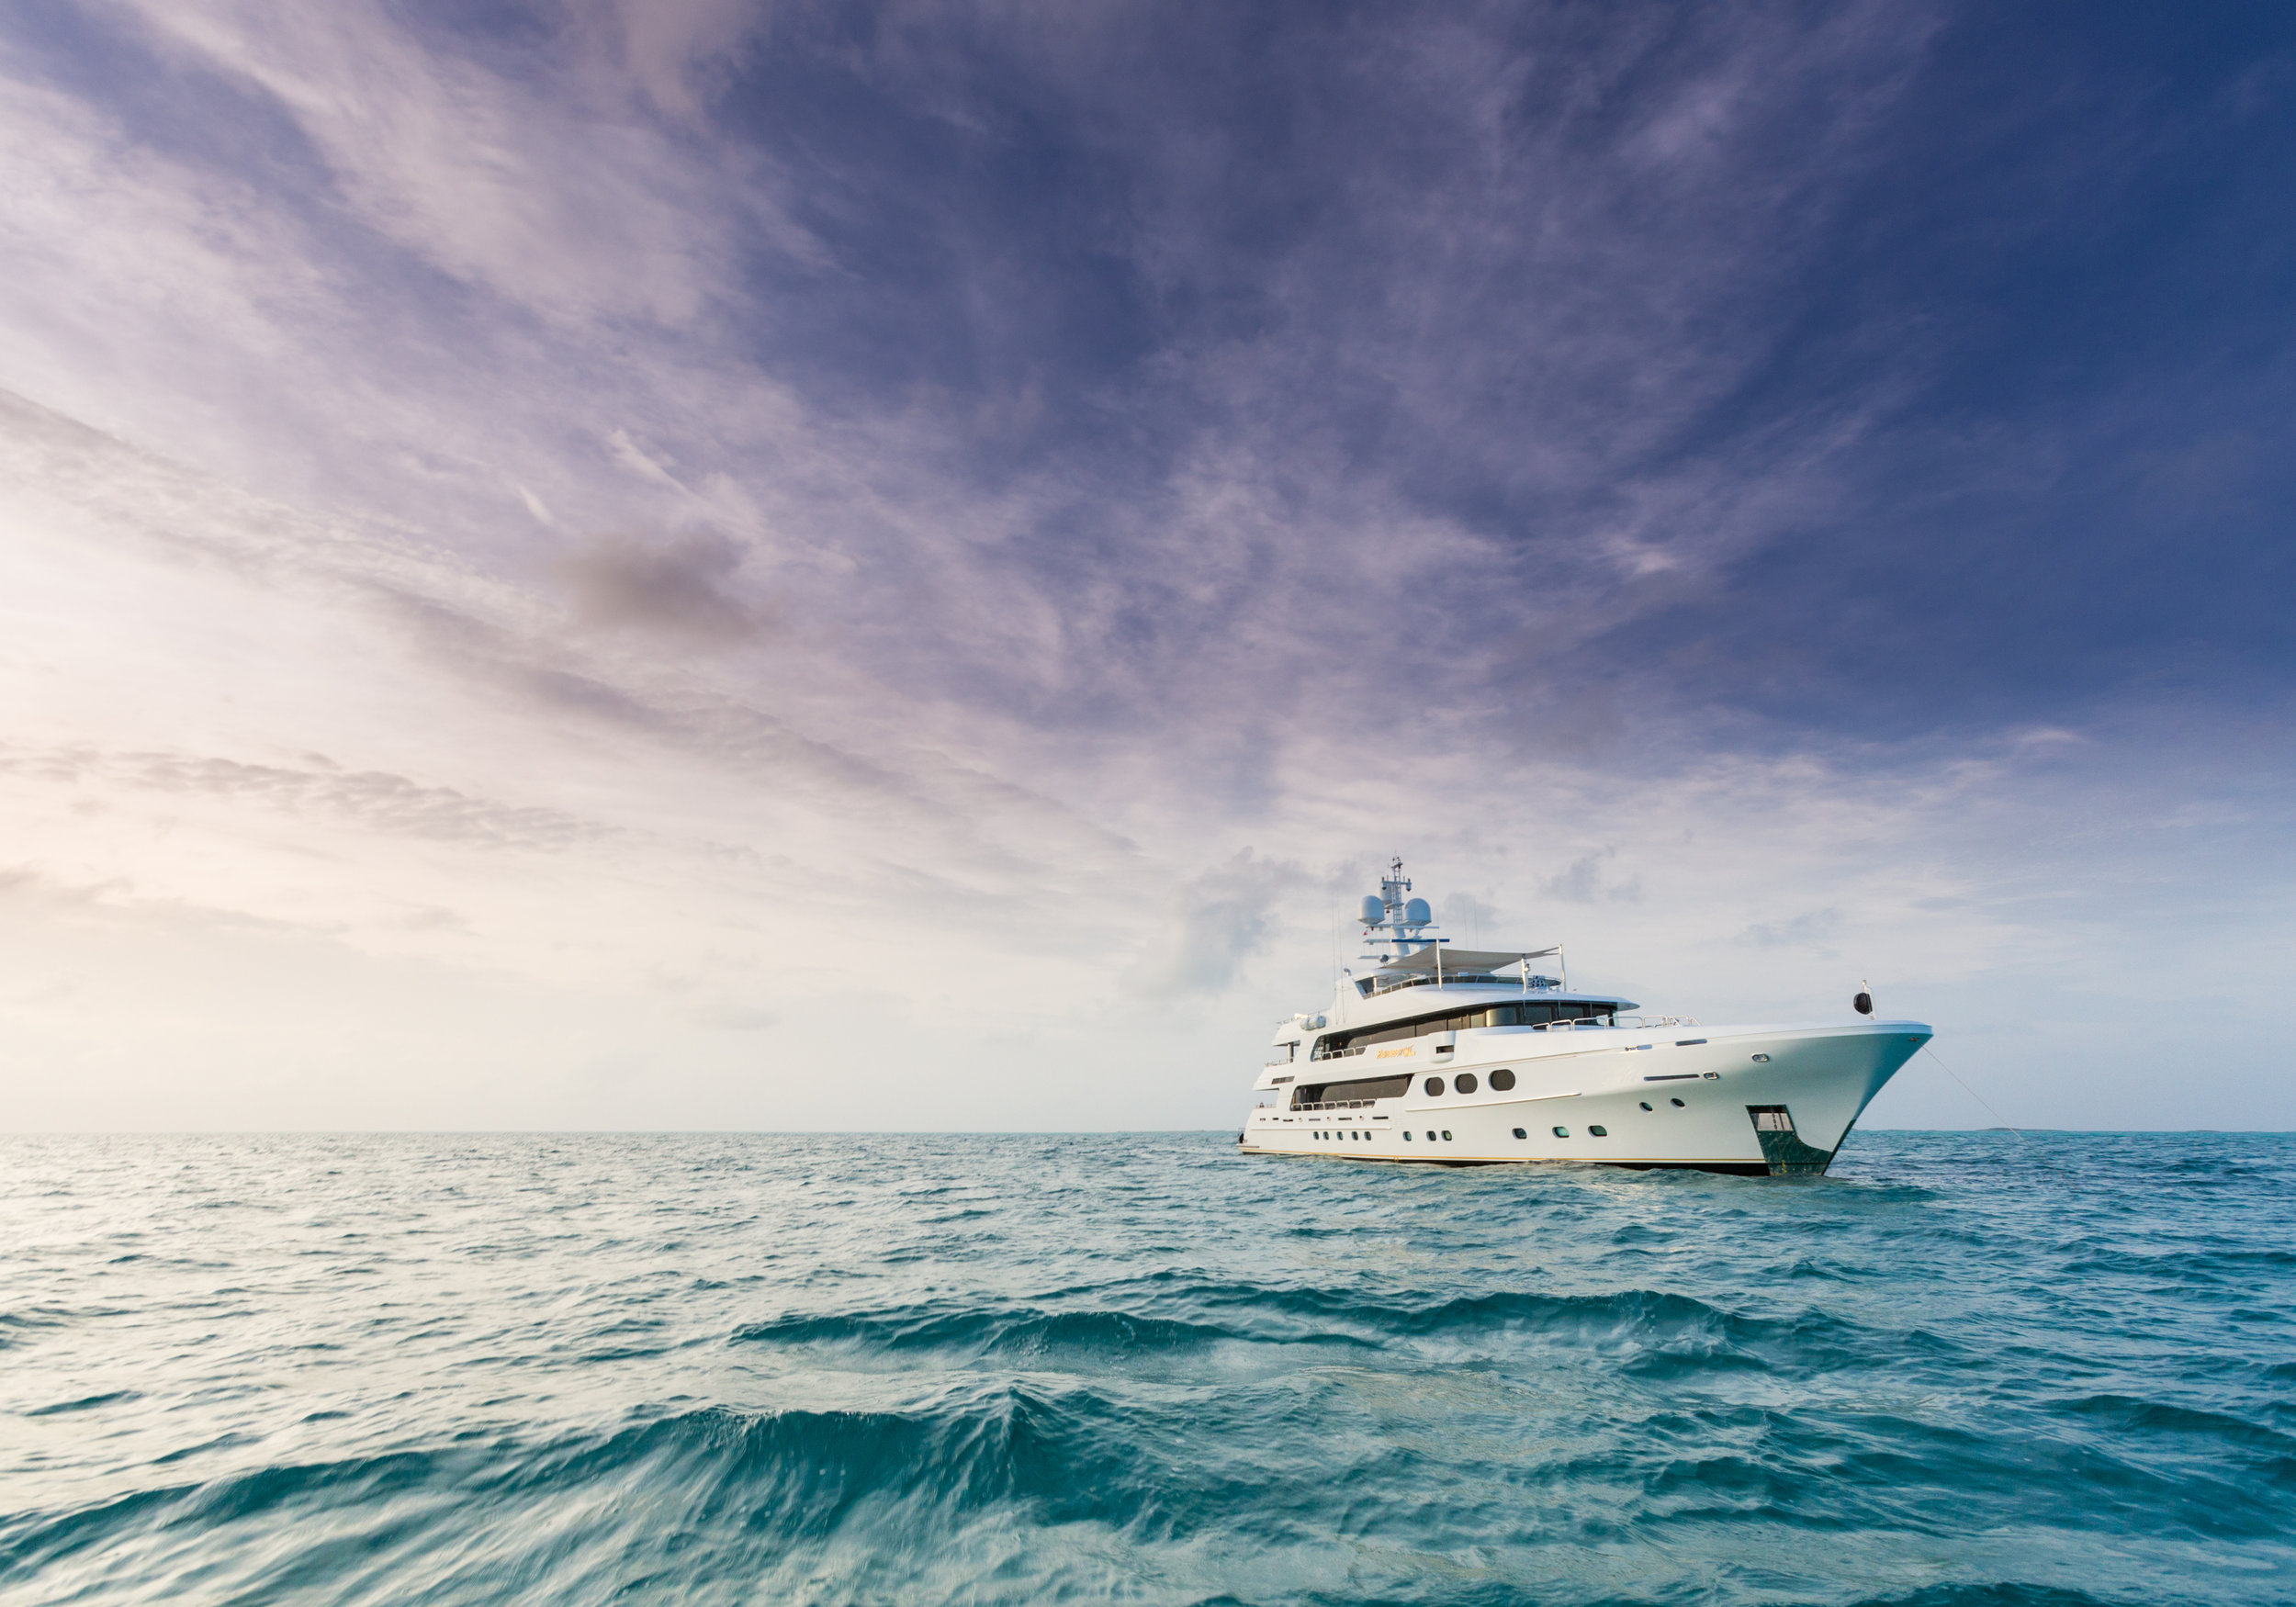 165' Charter Yacht Remember When, the vacation of a lifetime